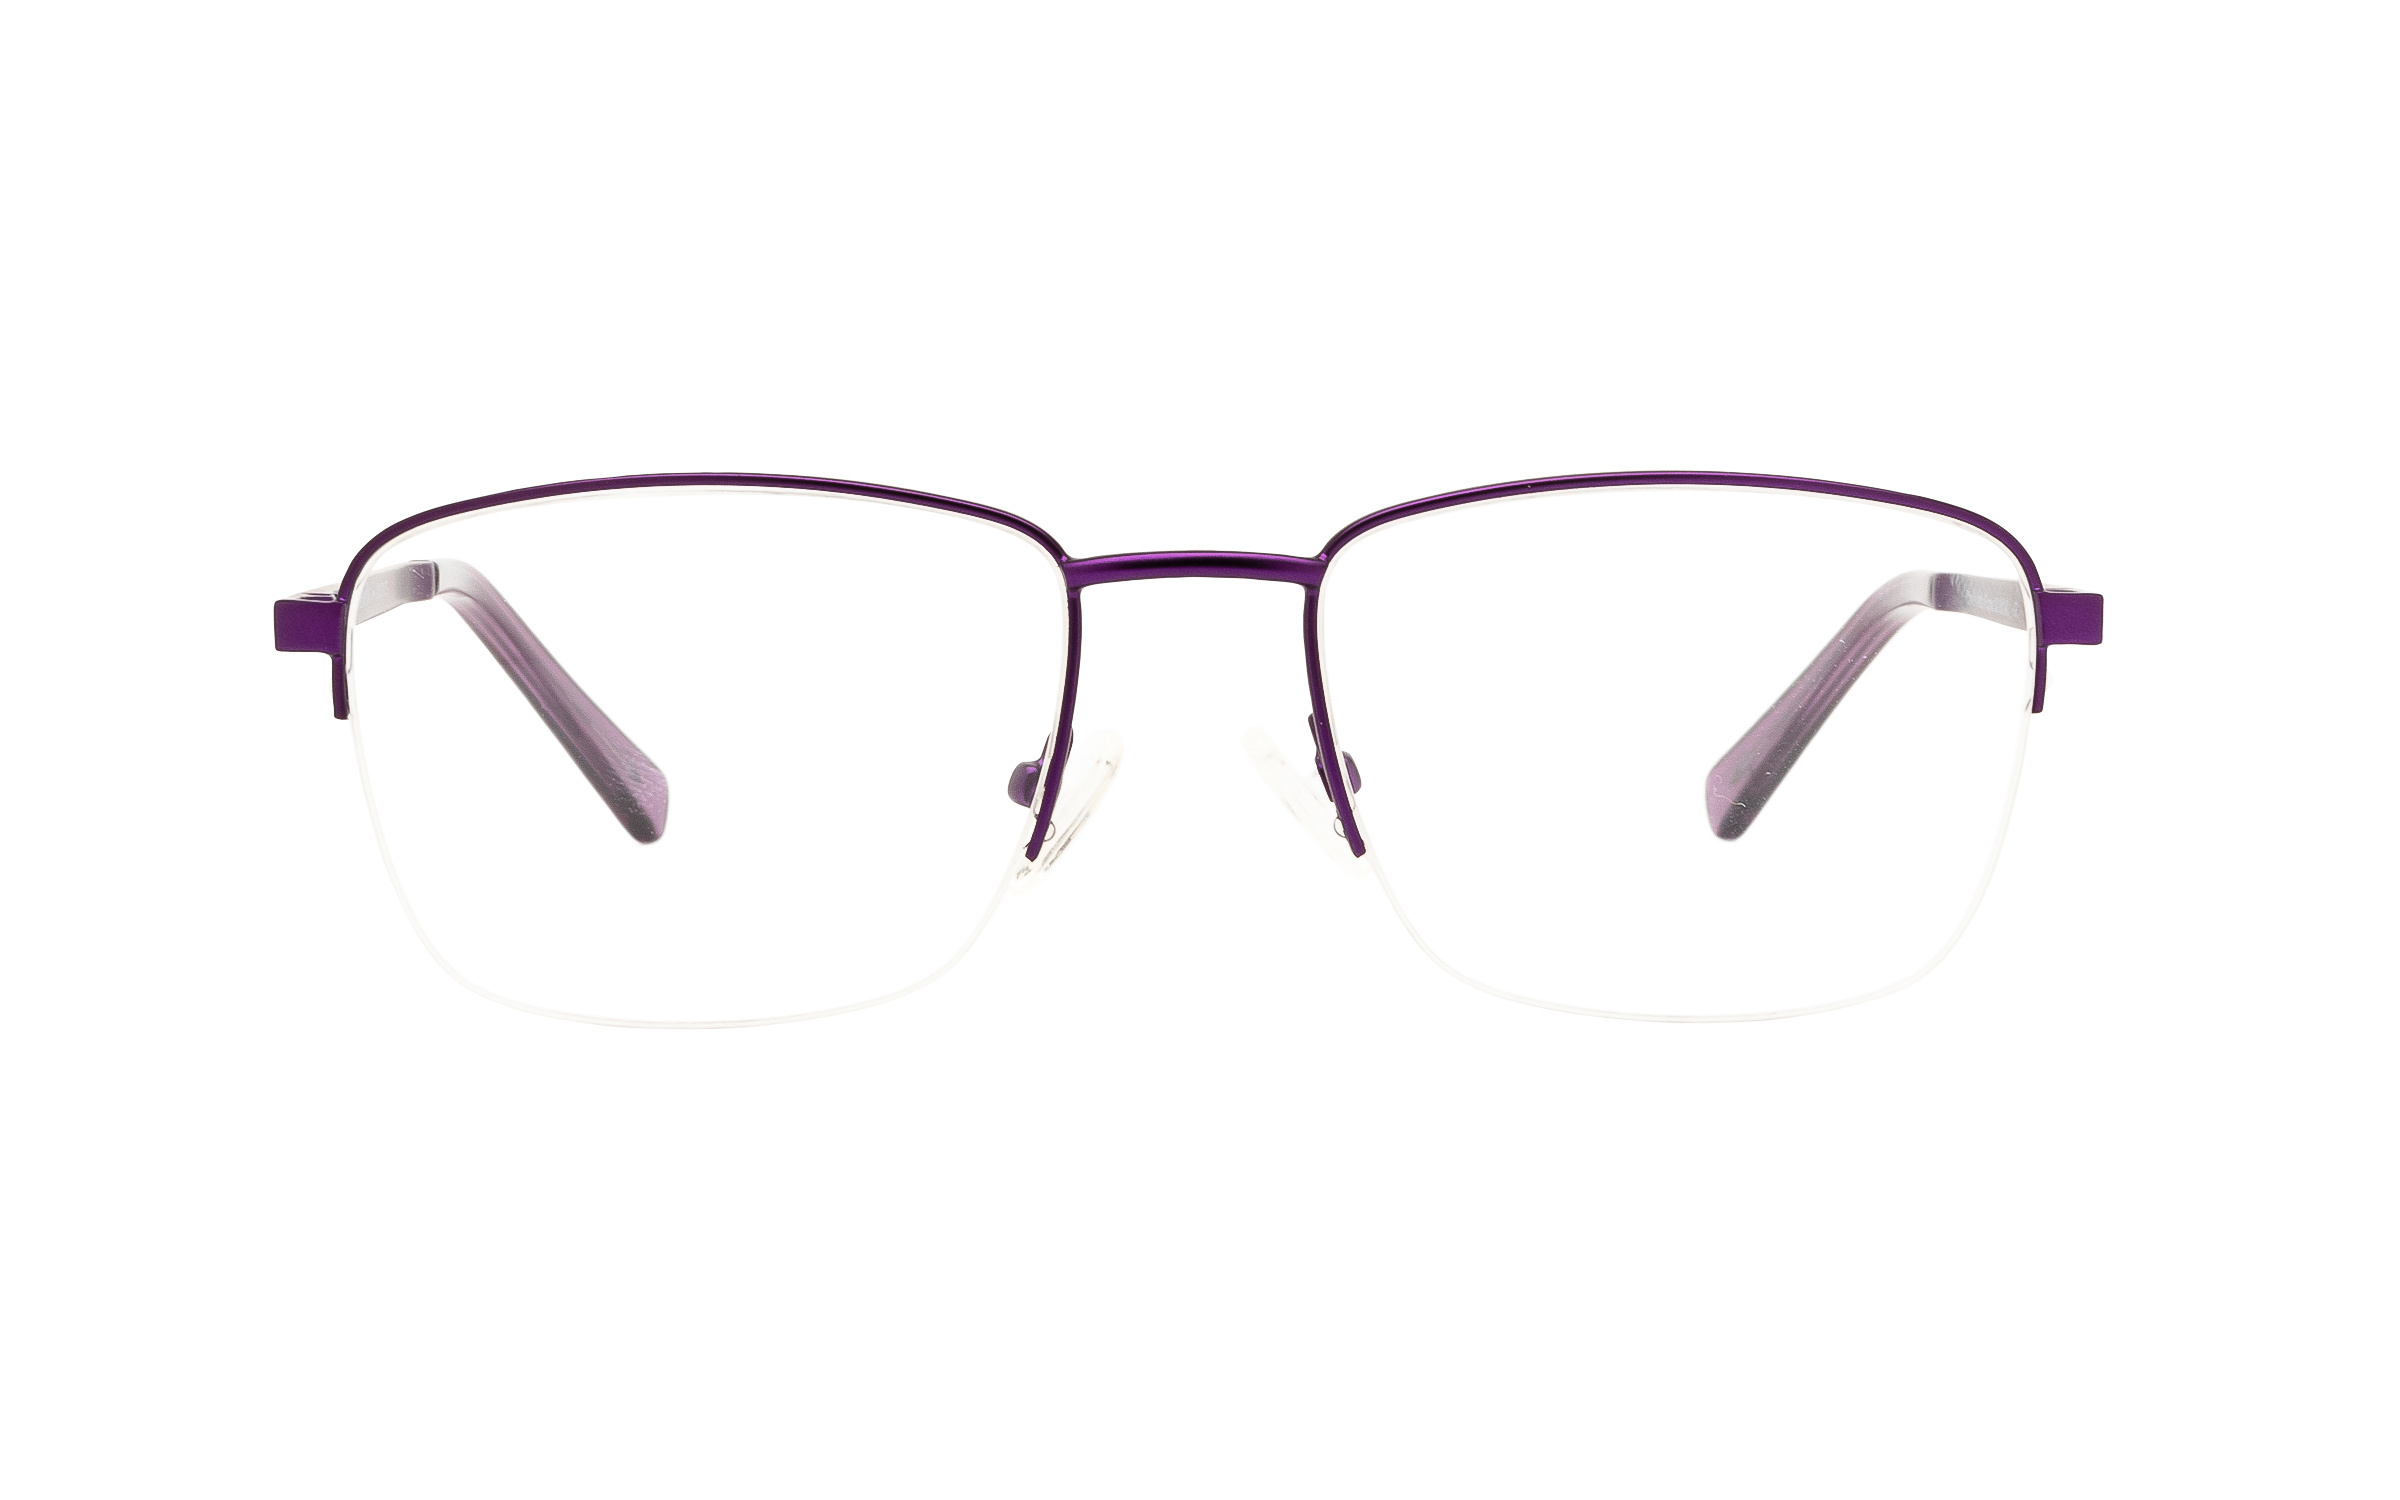 Clearly Basics Charlo CLS021 C02 (53) Eyeglasses and Frame in Matte Purple | Plastic/Metal - Online